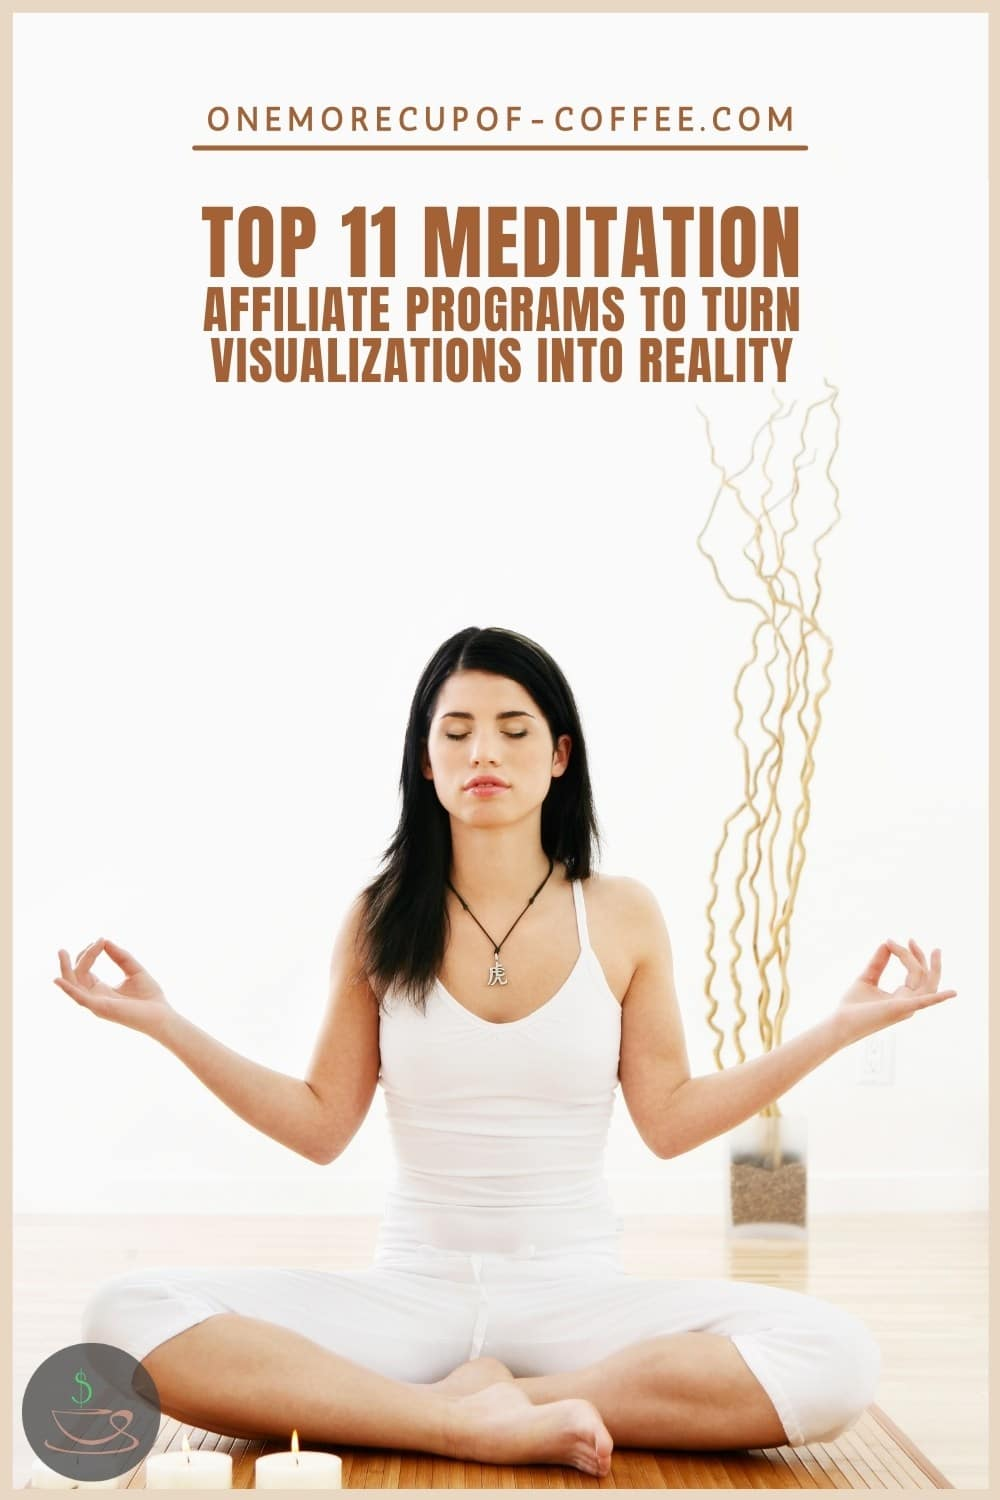 """long-haired woman in white top and pants sitting in a yoga position, with text overlay """"Top 11 Meditation Affiliate Programs To Turn Visualizations Into Reality"""""""